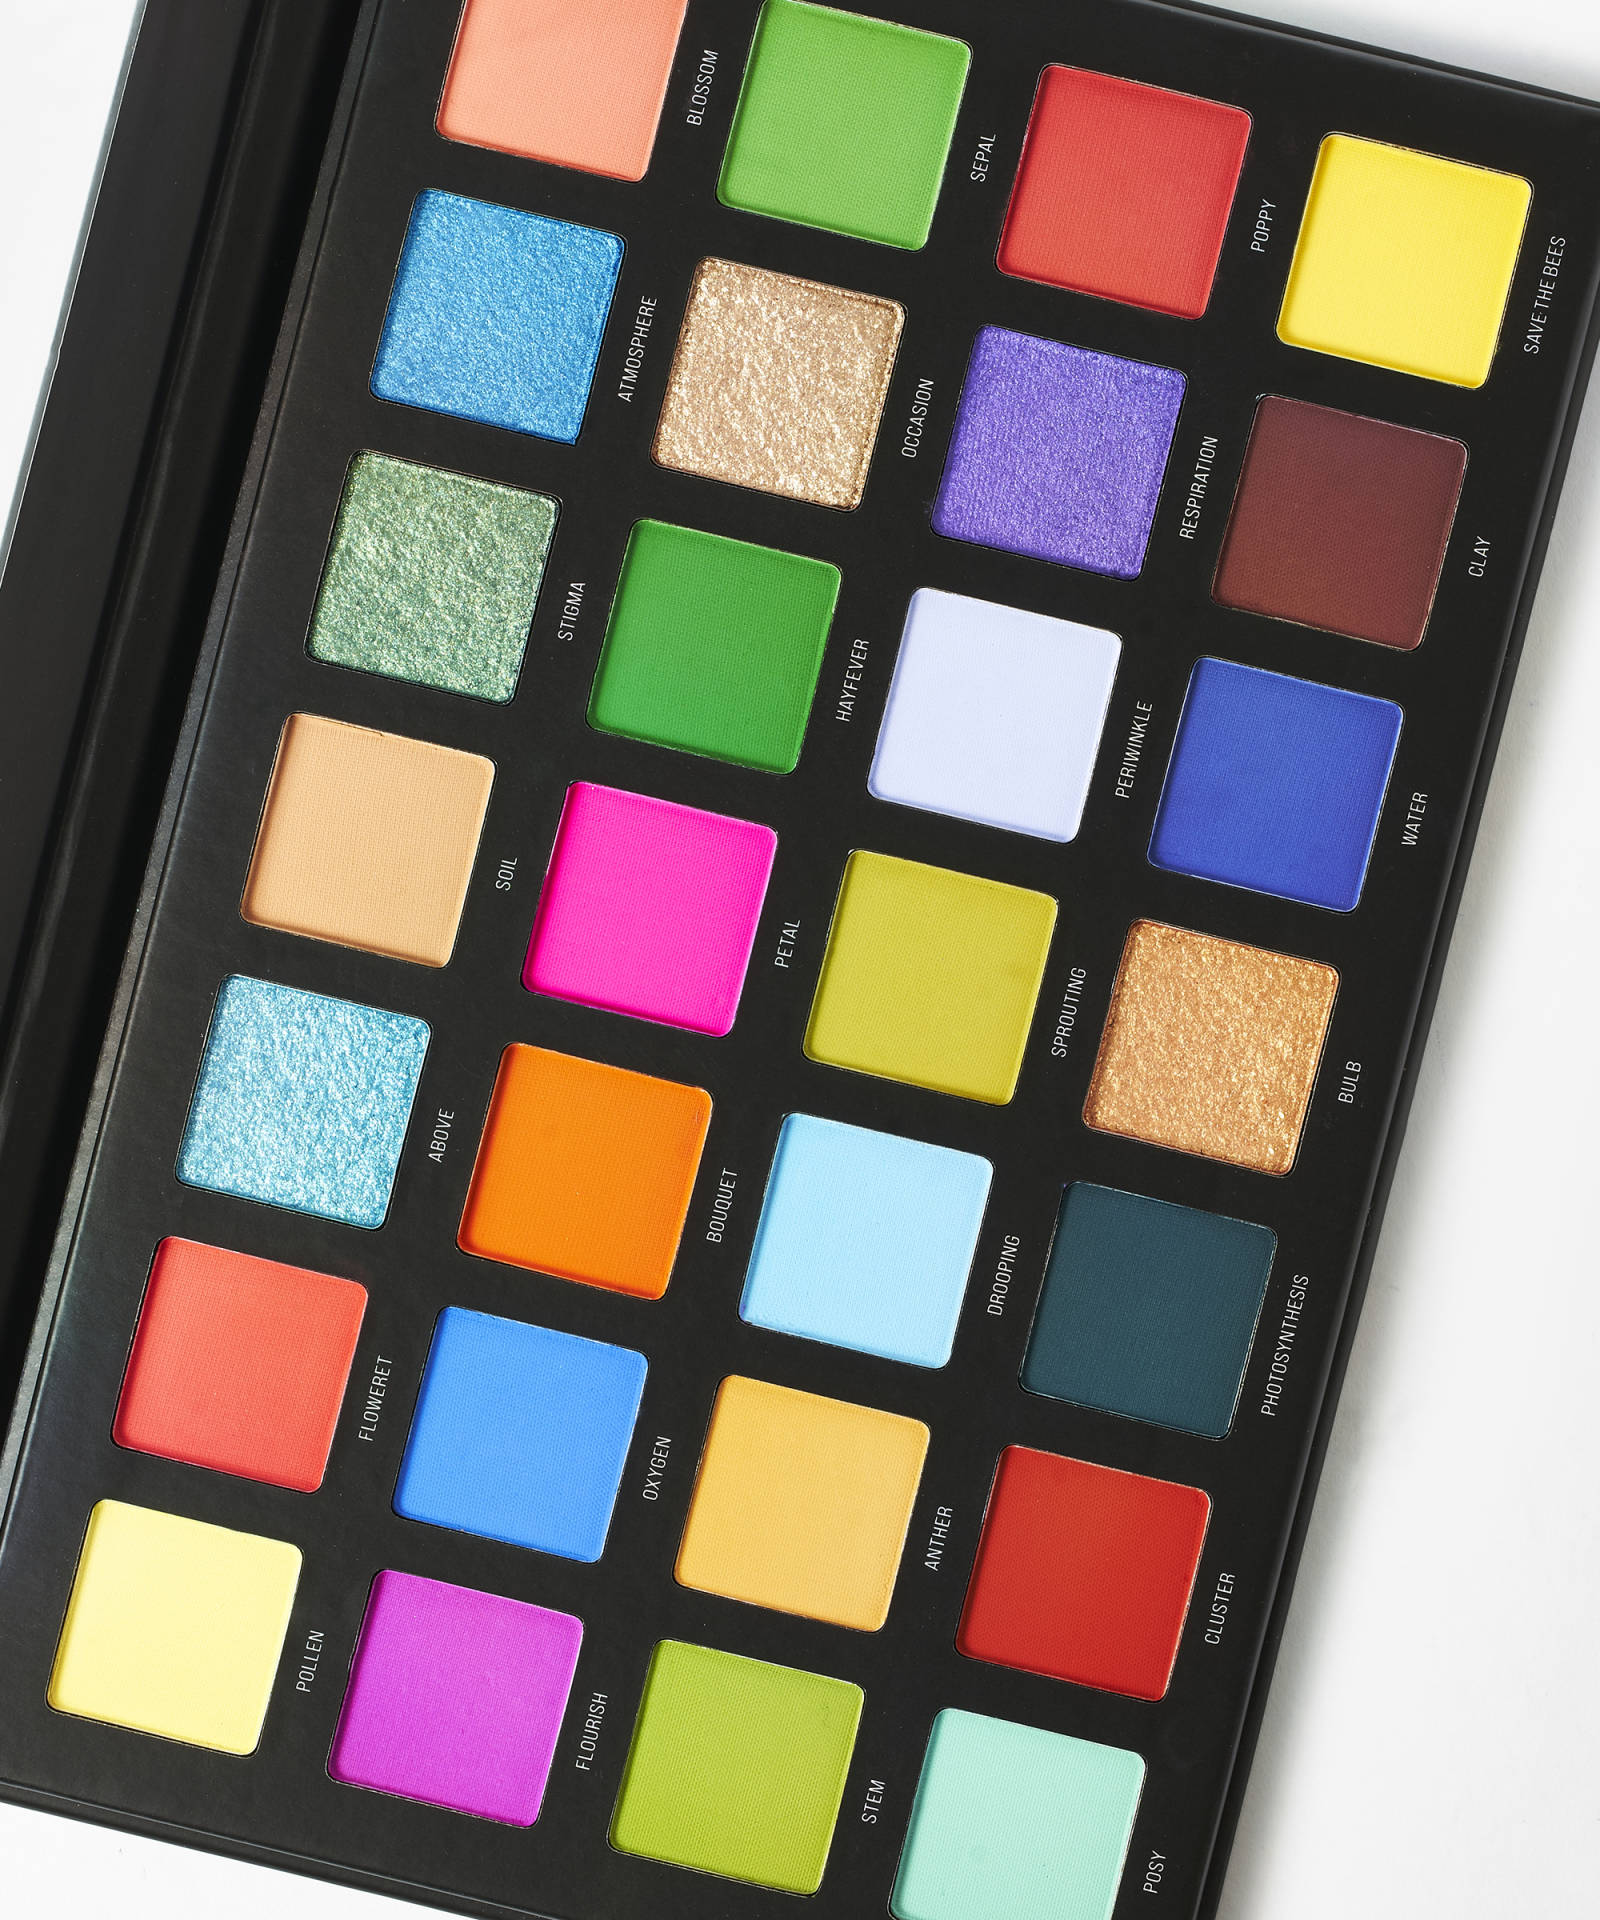 Sample Beauty The Blooming Lovely Palette